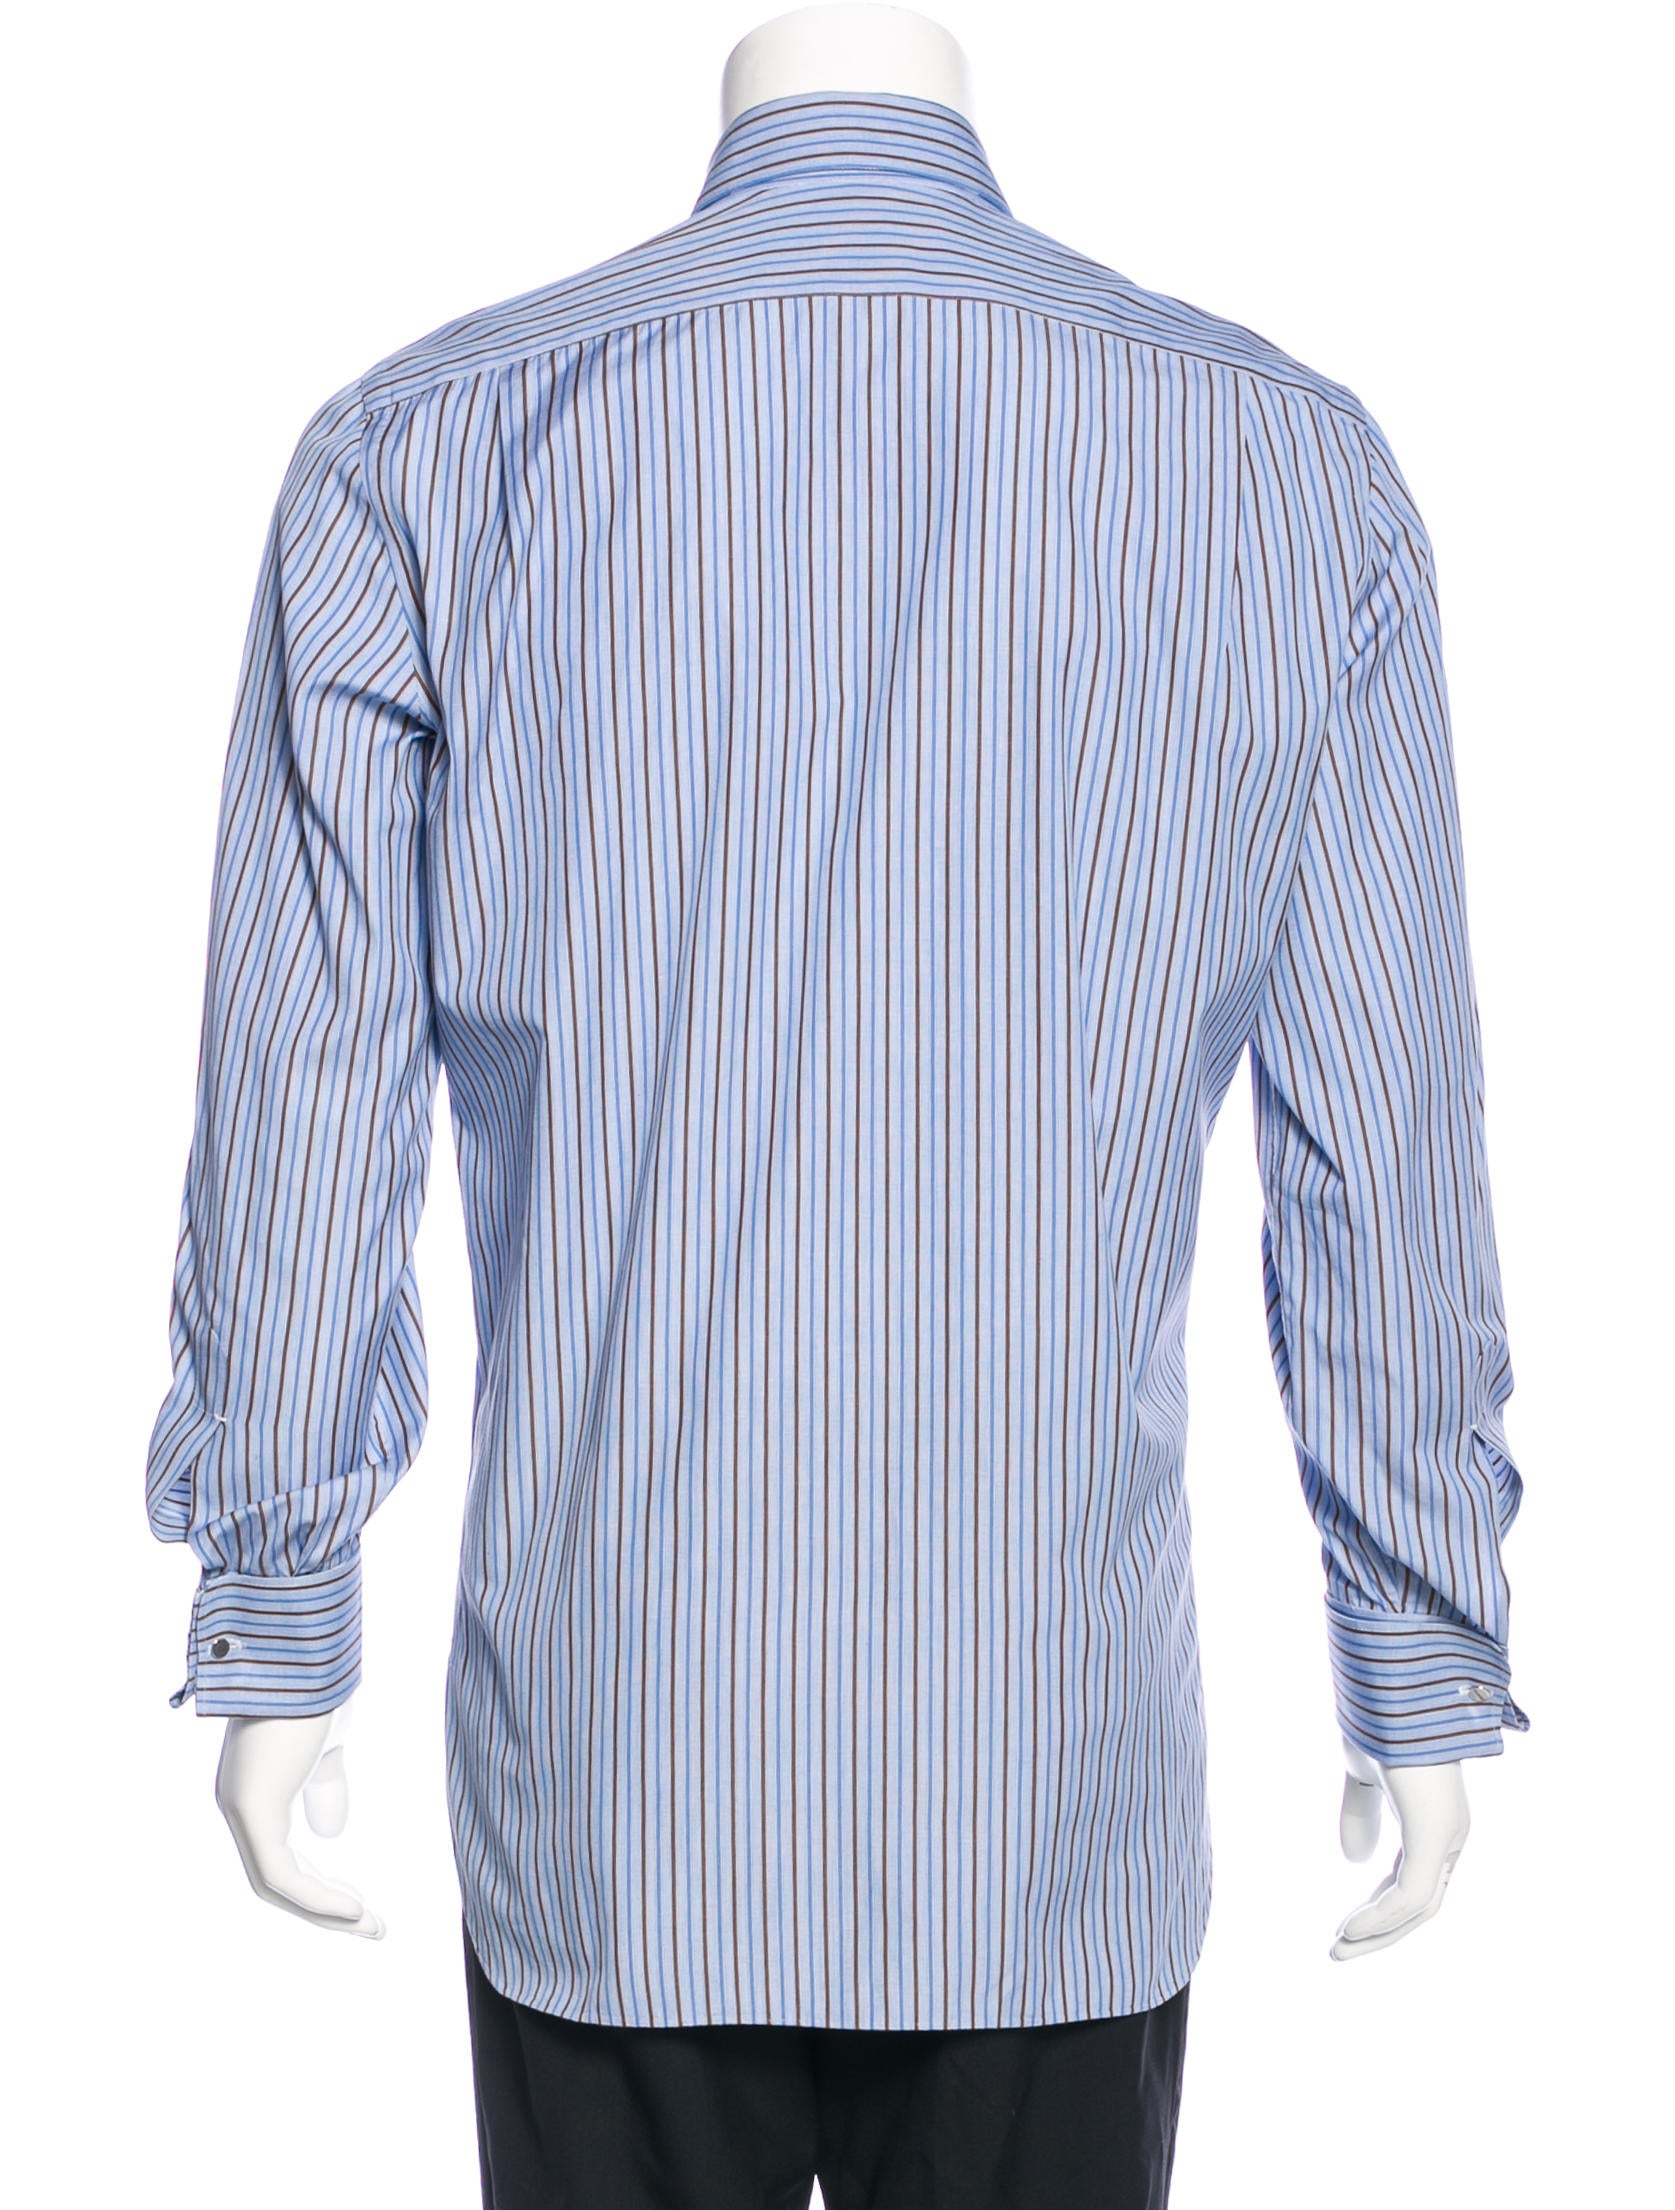 kiton striped french cuff shirt clothing kit21180. Black Bedroom Furniture Sets. Home Design Ideas